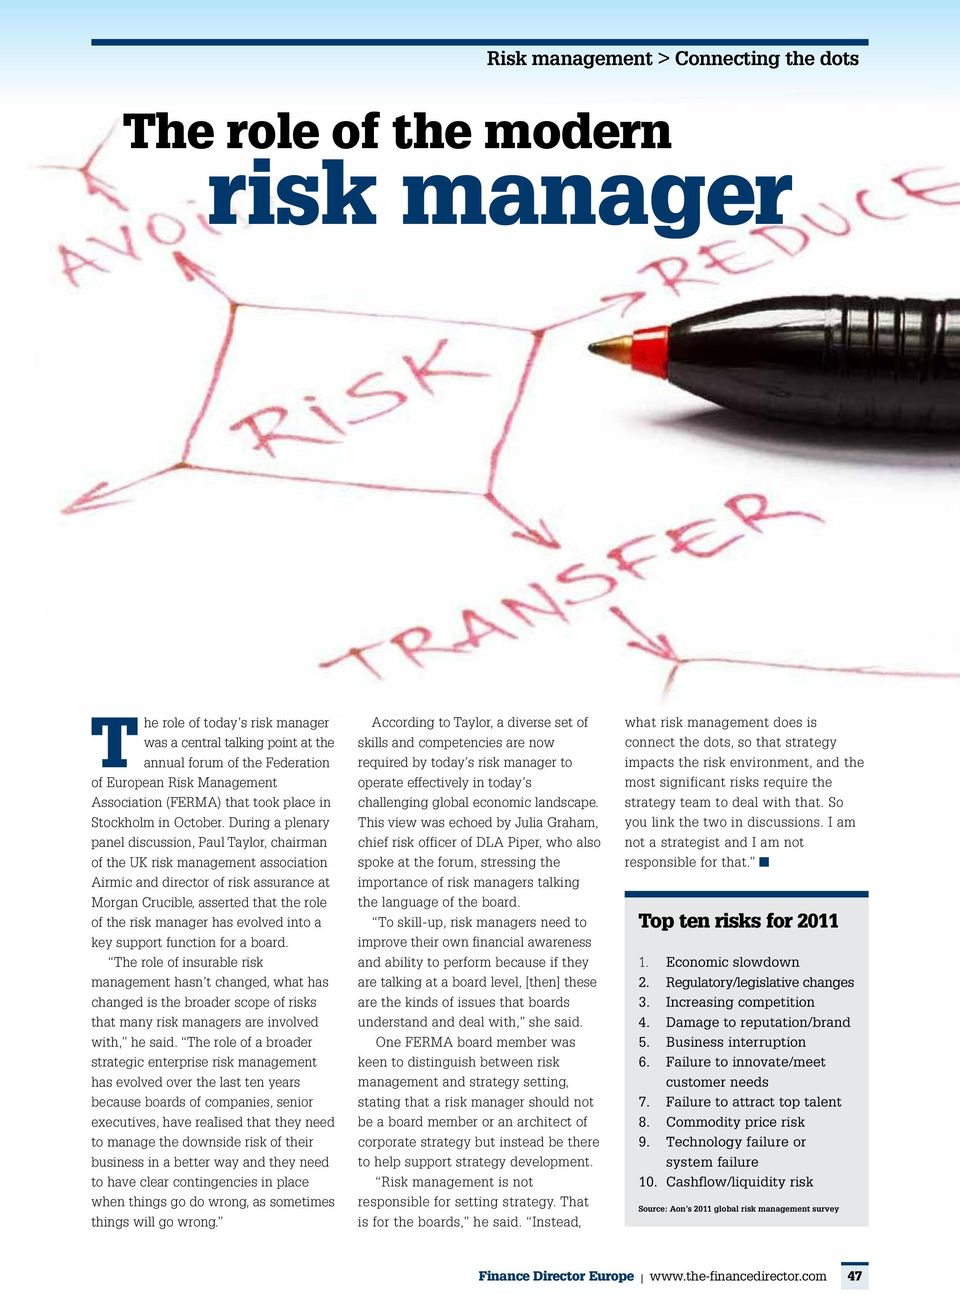 During a plenary panel discussion, Paul Taylor, chairman of the UK risk management association Airmic and director of risk assurance at Morgan Crucible, asserted that the role of the risk manager has